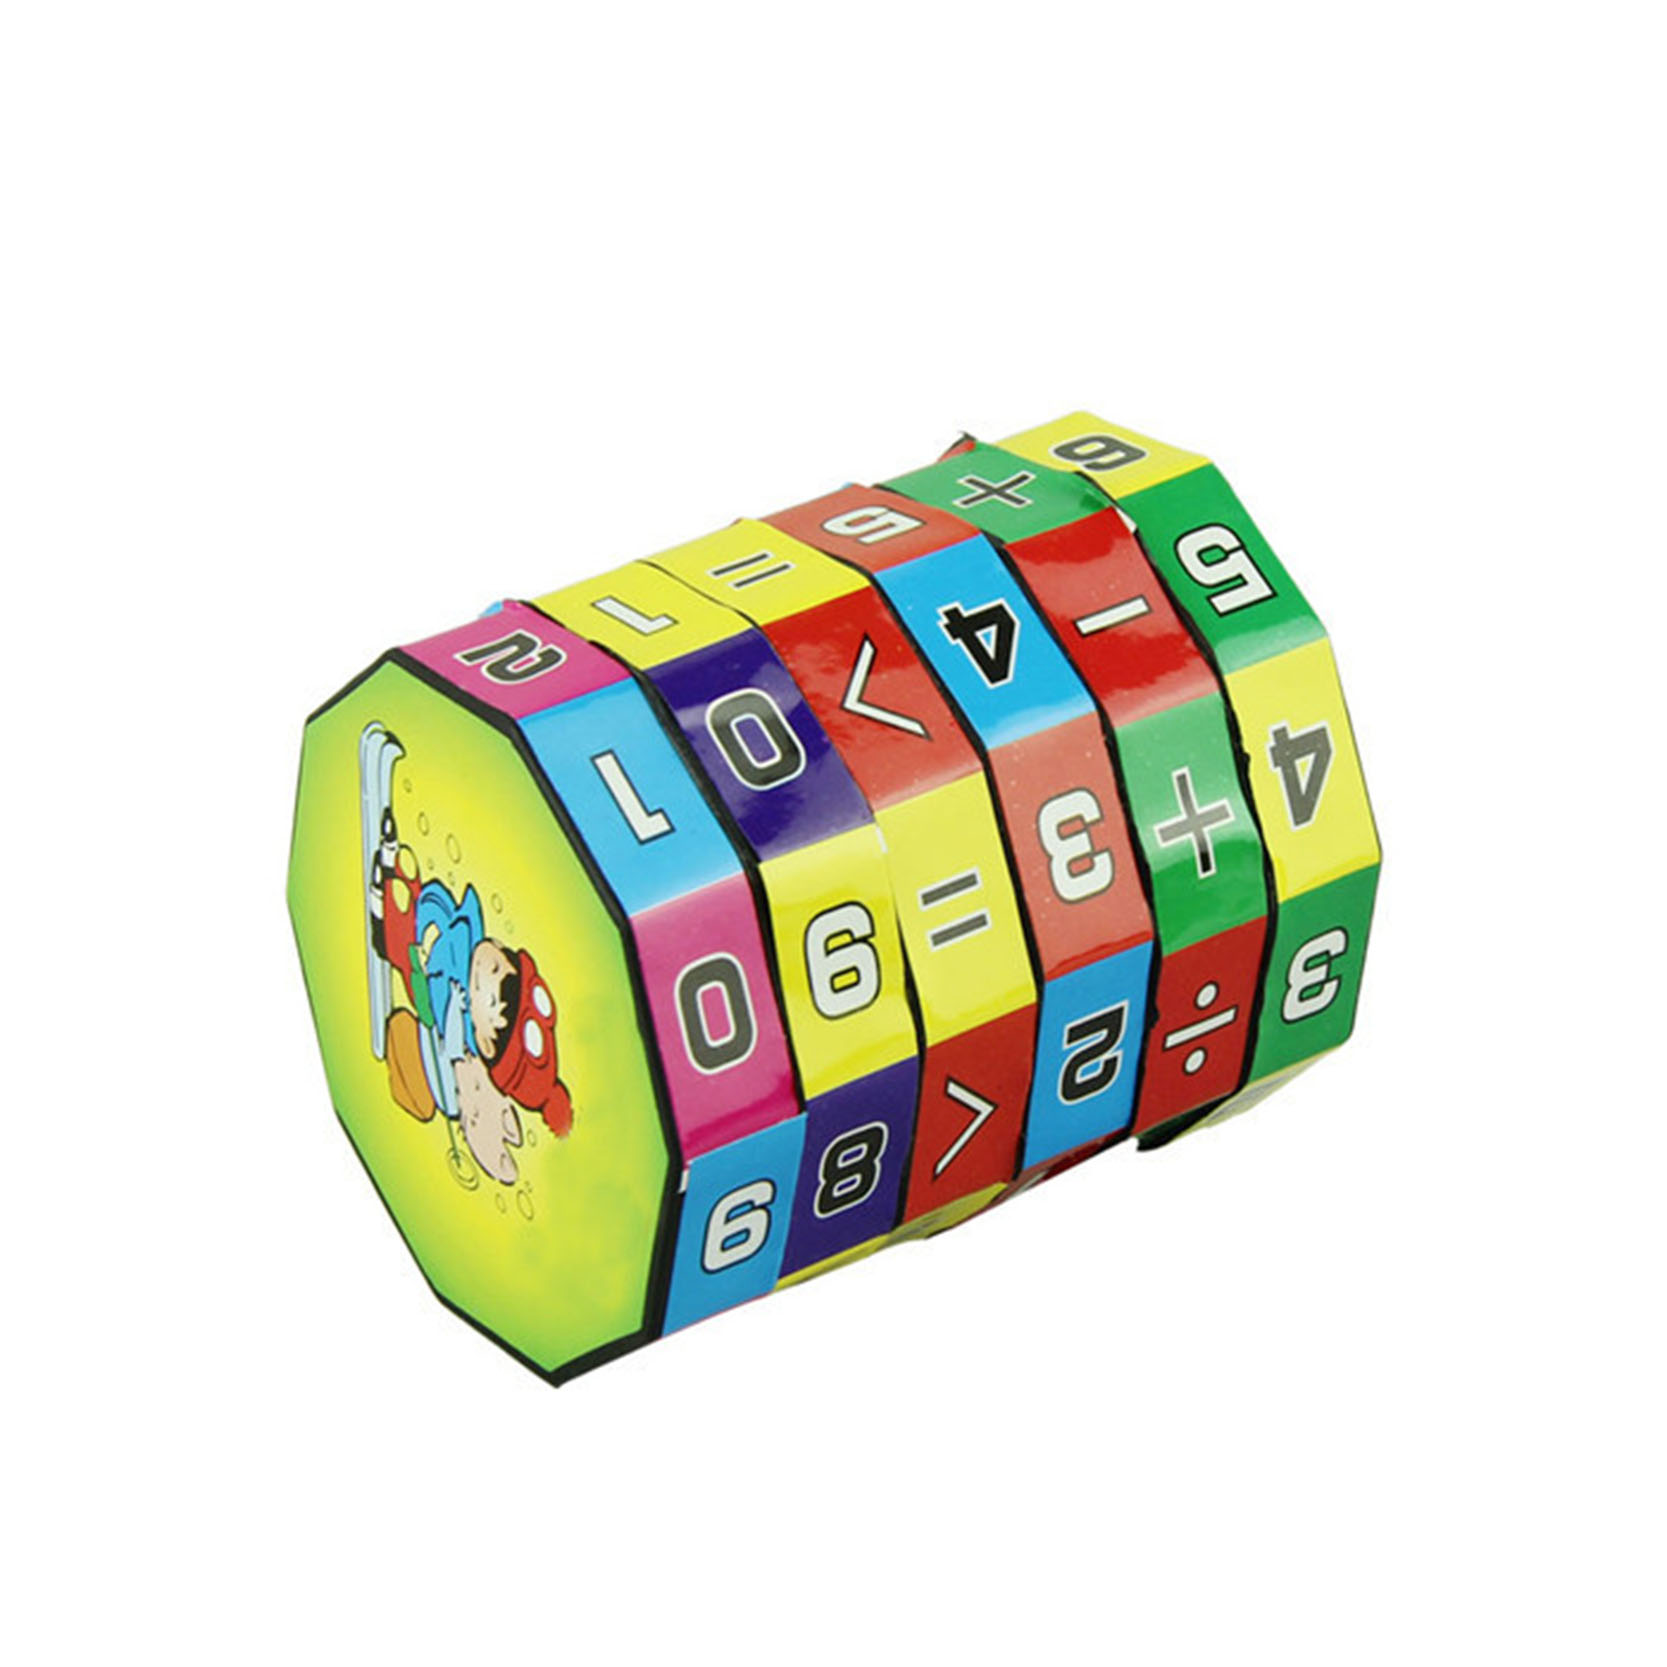 Newest Design Digital Cube Children Educational Learning Math Toys